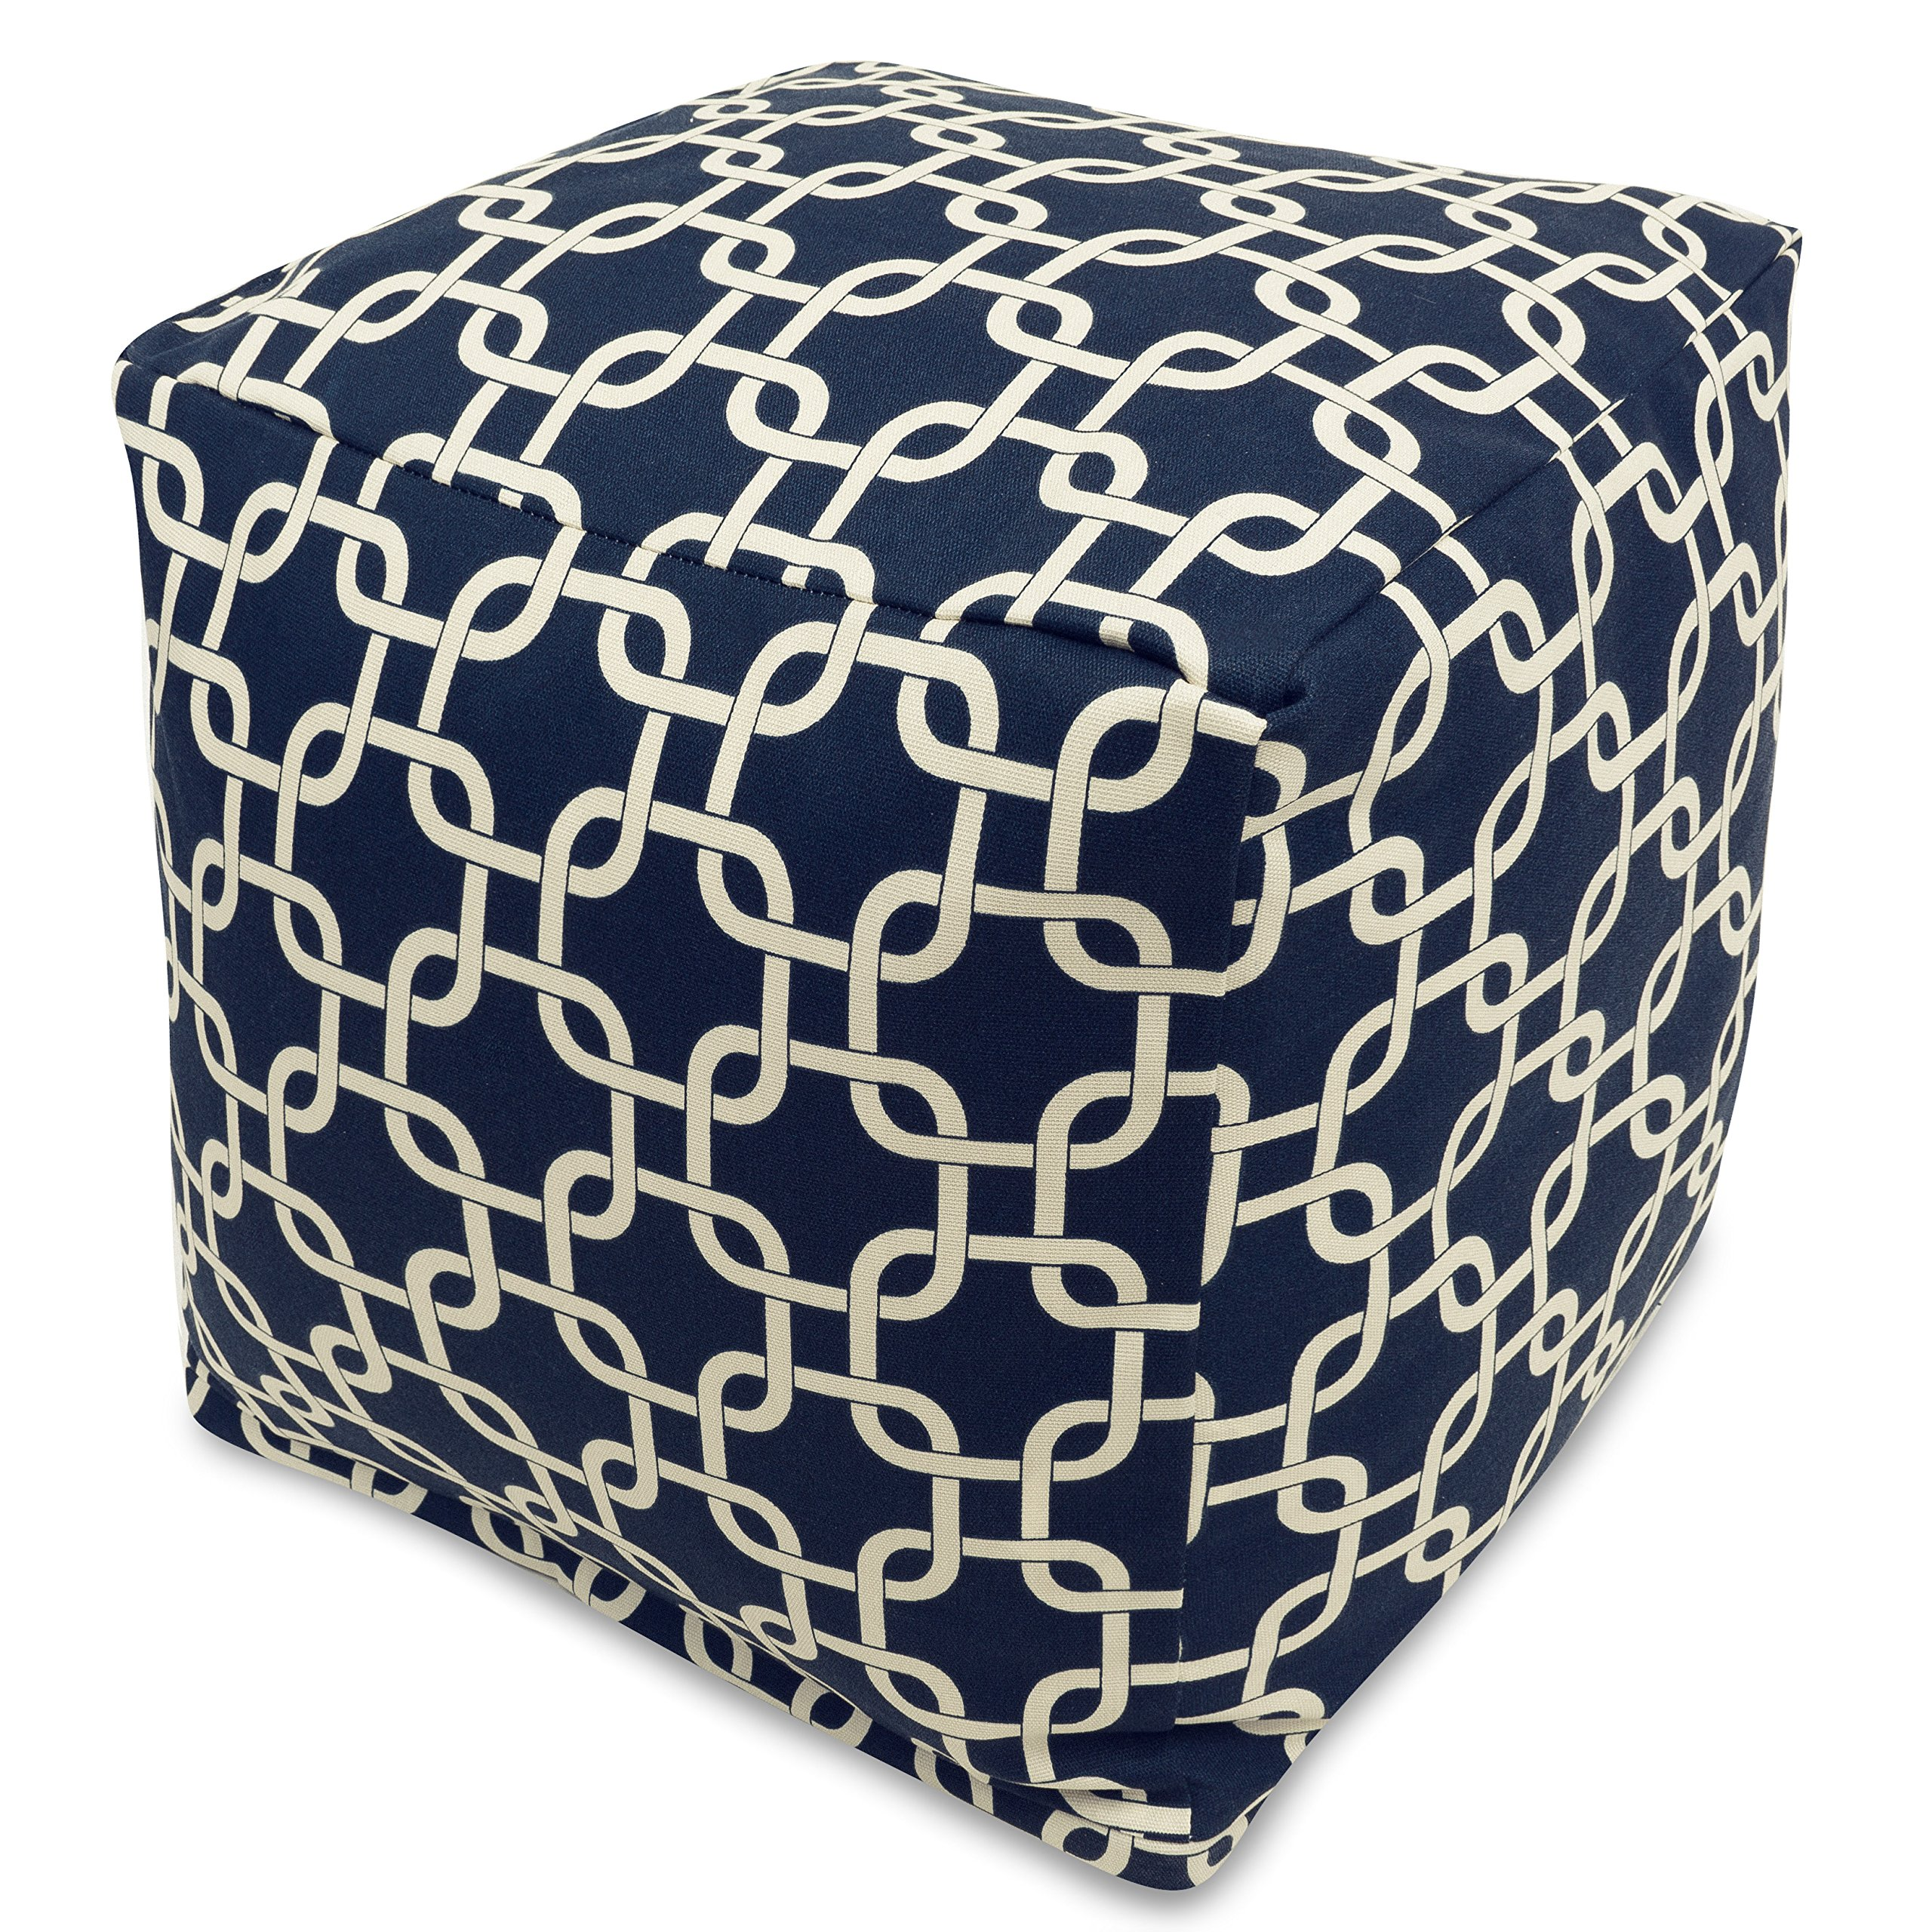 Majestic Home Goods Links Indoor/Outdoor Bean Bag Ottoman Pouf Cube, 17'' x 17'' x 17'' (Navy Blue)